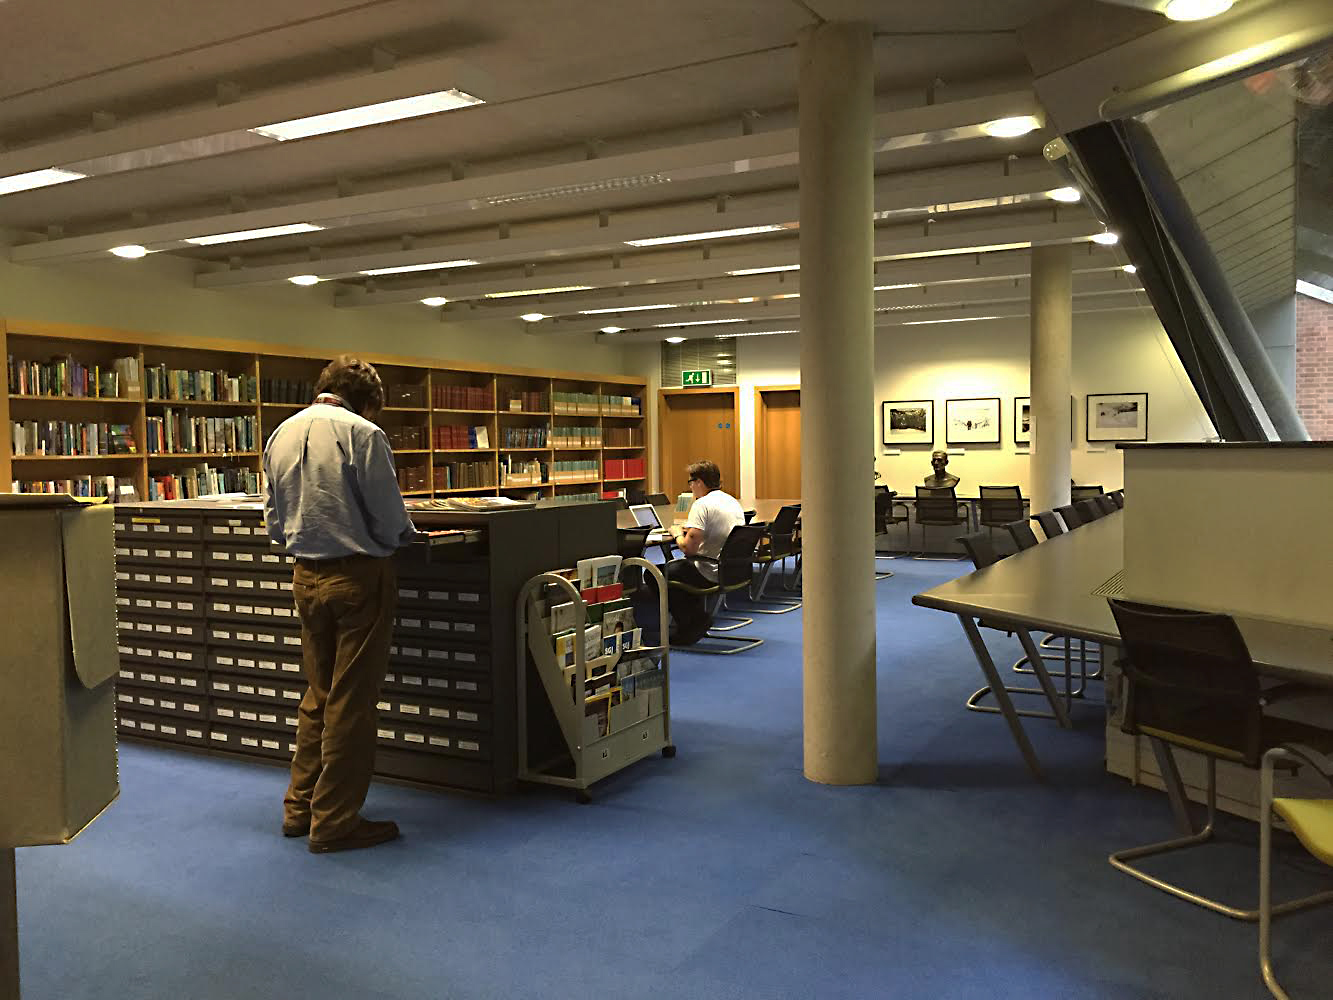 Afternoon researching in the library at the Royal Geographical Society